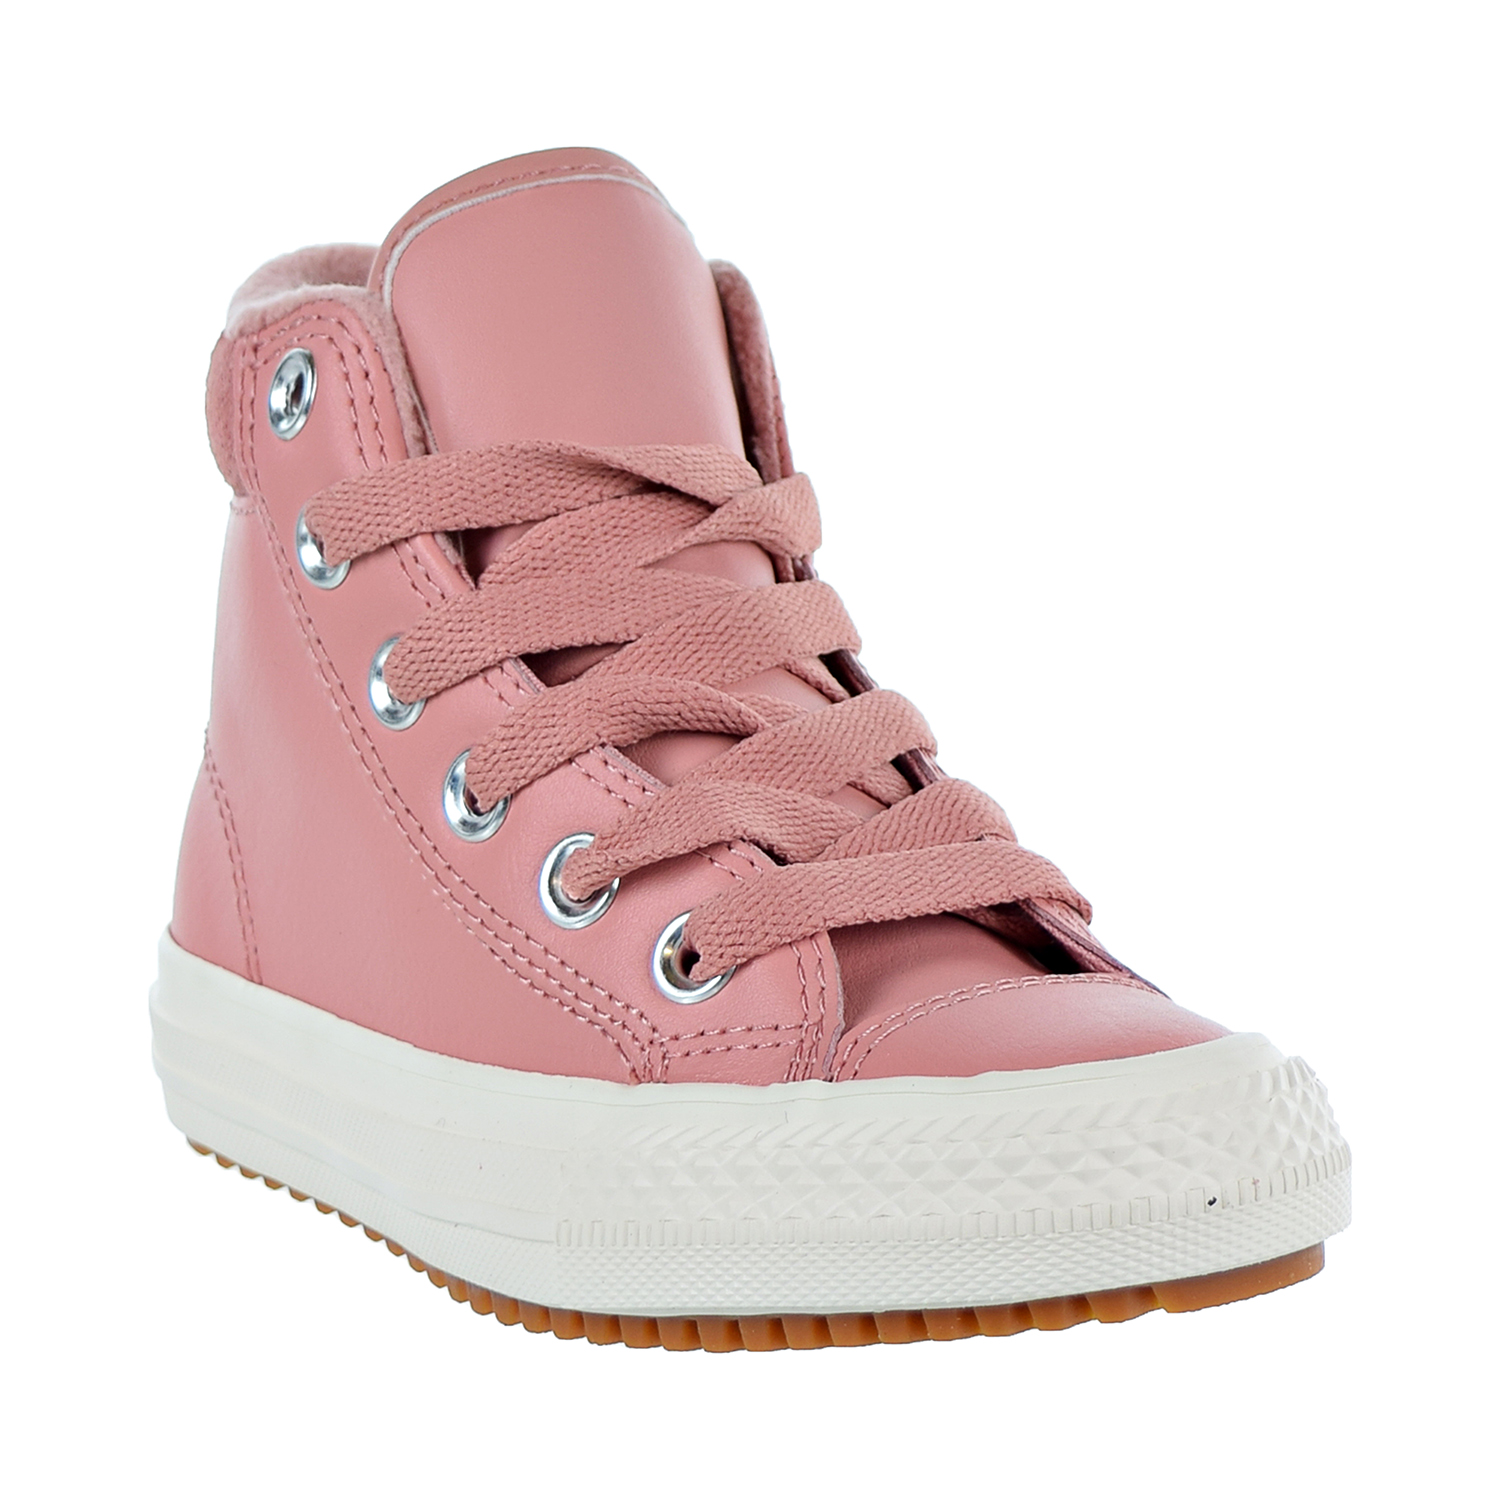 523c90dcb9e Converse Chuck Taylor All Star PC Boot Hi Kids Shoes Rusk Pink Burnt  Caramel 661905c